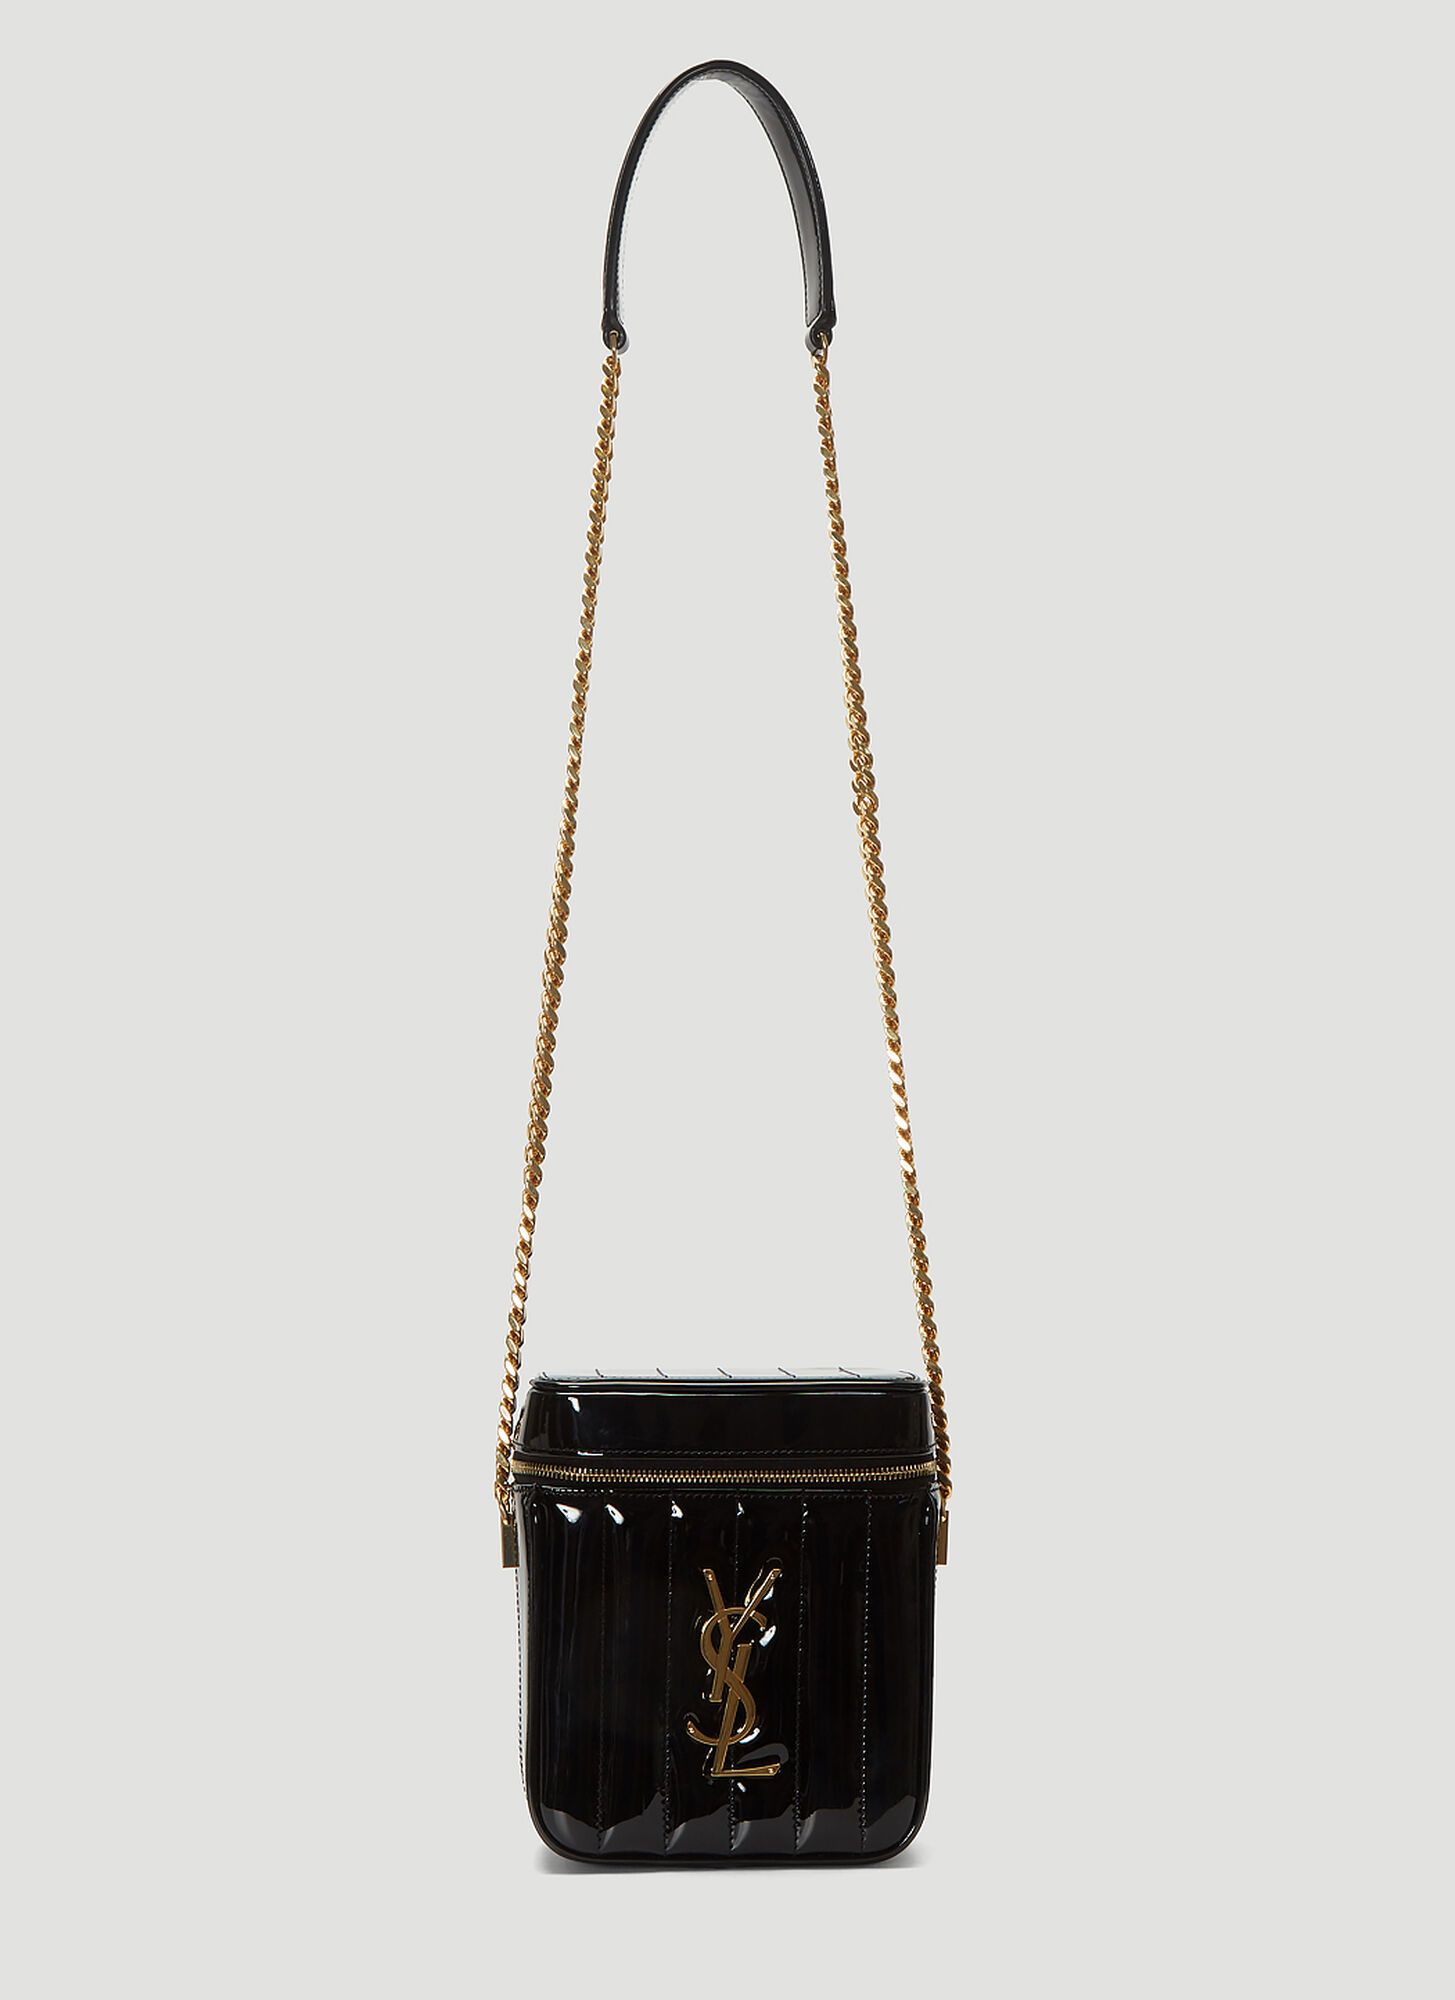 Photo of Saint Laurent Patent Vicky Bag in Black - Saint Laurent Shoulder Bags